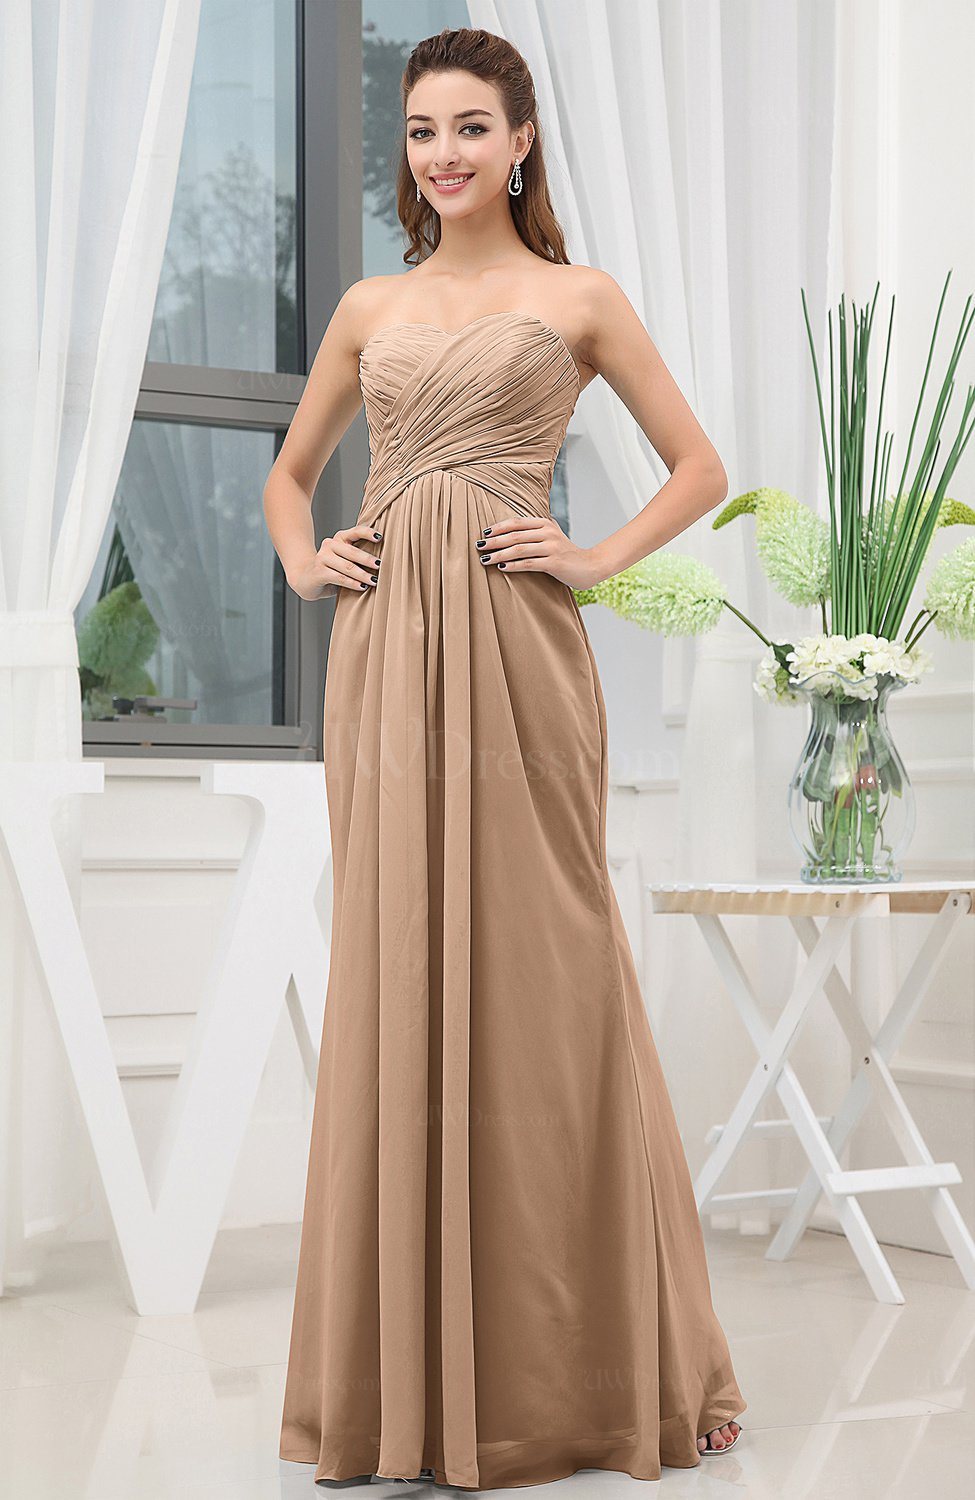 Maroon bridesmaid dresses classic uwdress light brown simple sweetheart sleeveless zipper floor length ruching bridesmaid dresses ombrellifo Images